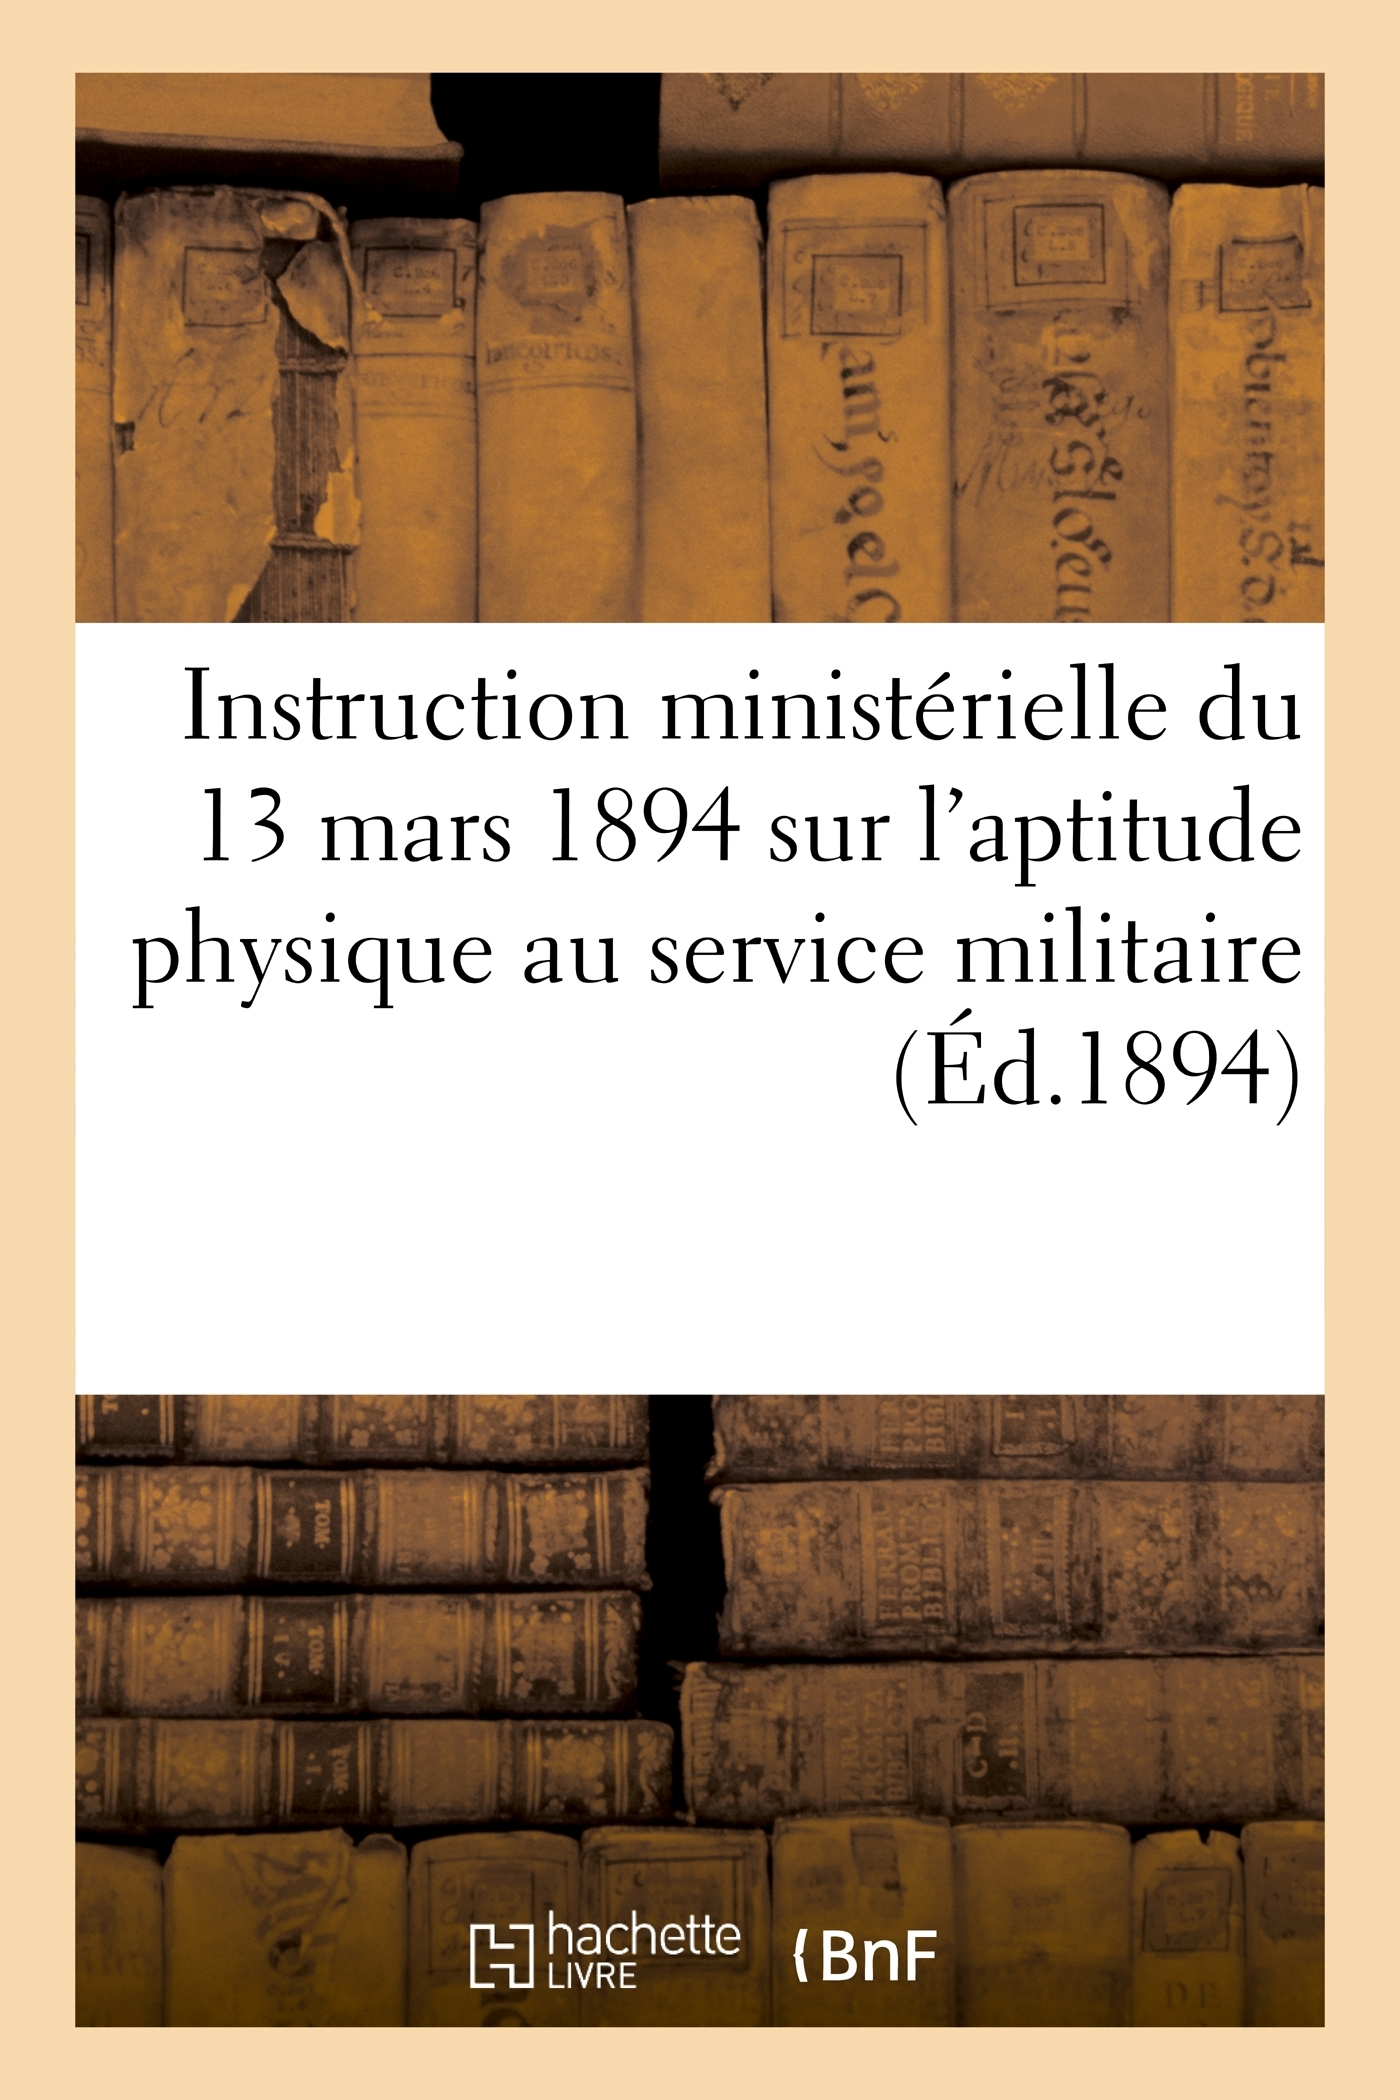 INSTRUCTION MINISTERIELLE DU 13 MARS 1894 SUR L'APTITUDE PHYSIQUE AU SERVICE MILITAIRE